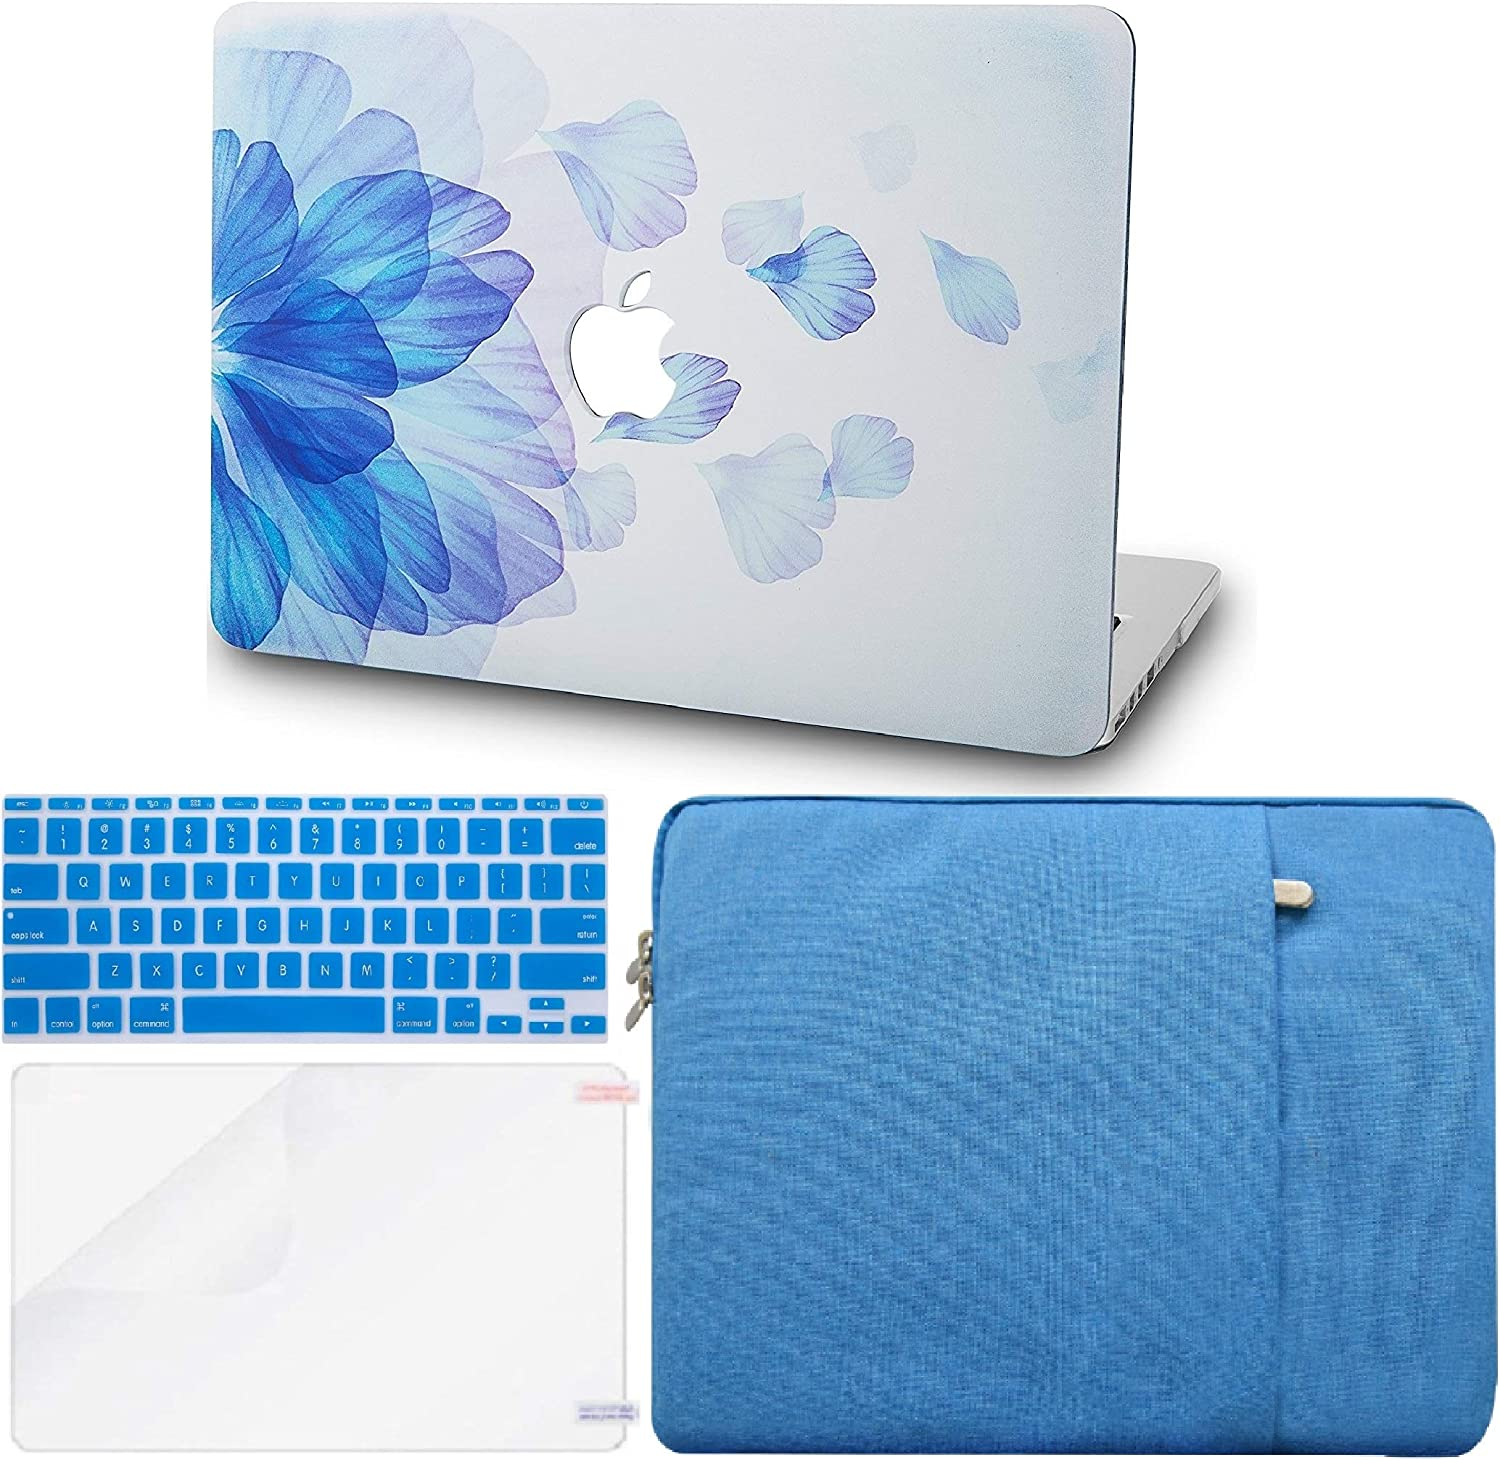 """KECC Laptop Case for MacBook Air 13"""" Retina (2020/2019/2018, Touch ID) w/Keyboard Cover + Sleeve + Screen Protector (4 in 1 Bundle) Plastic Hard Shell Case A1932 (Blue Flower)"""